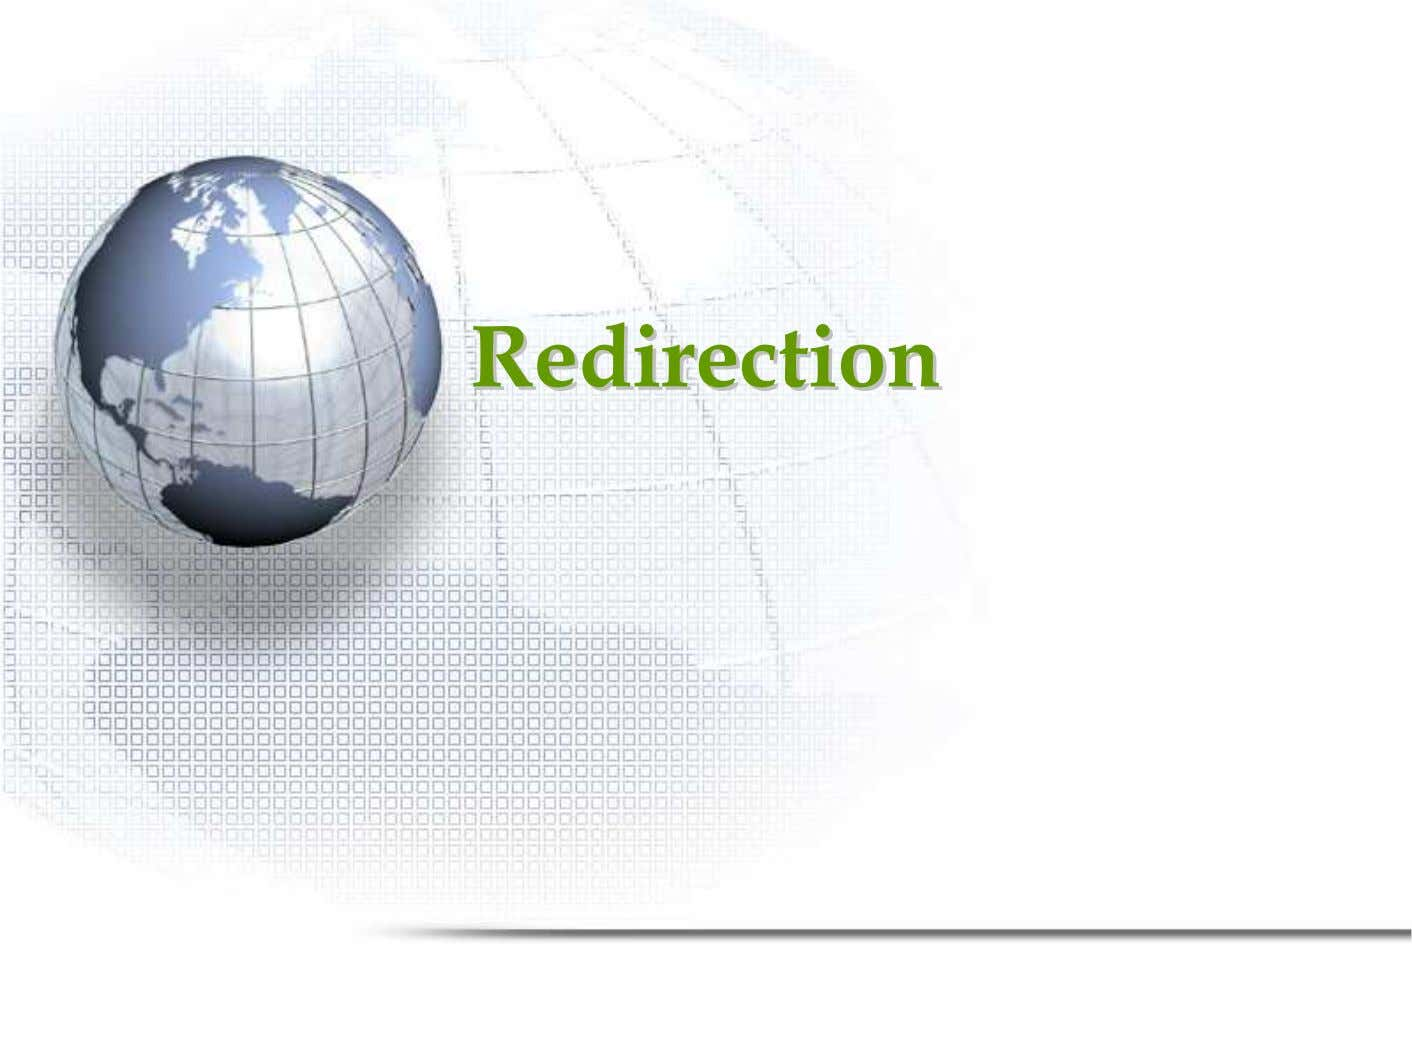 RedirectionRedirection